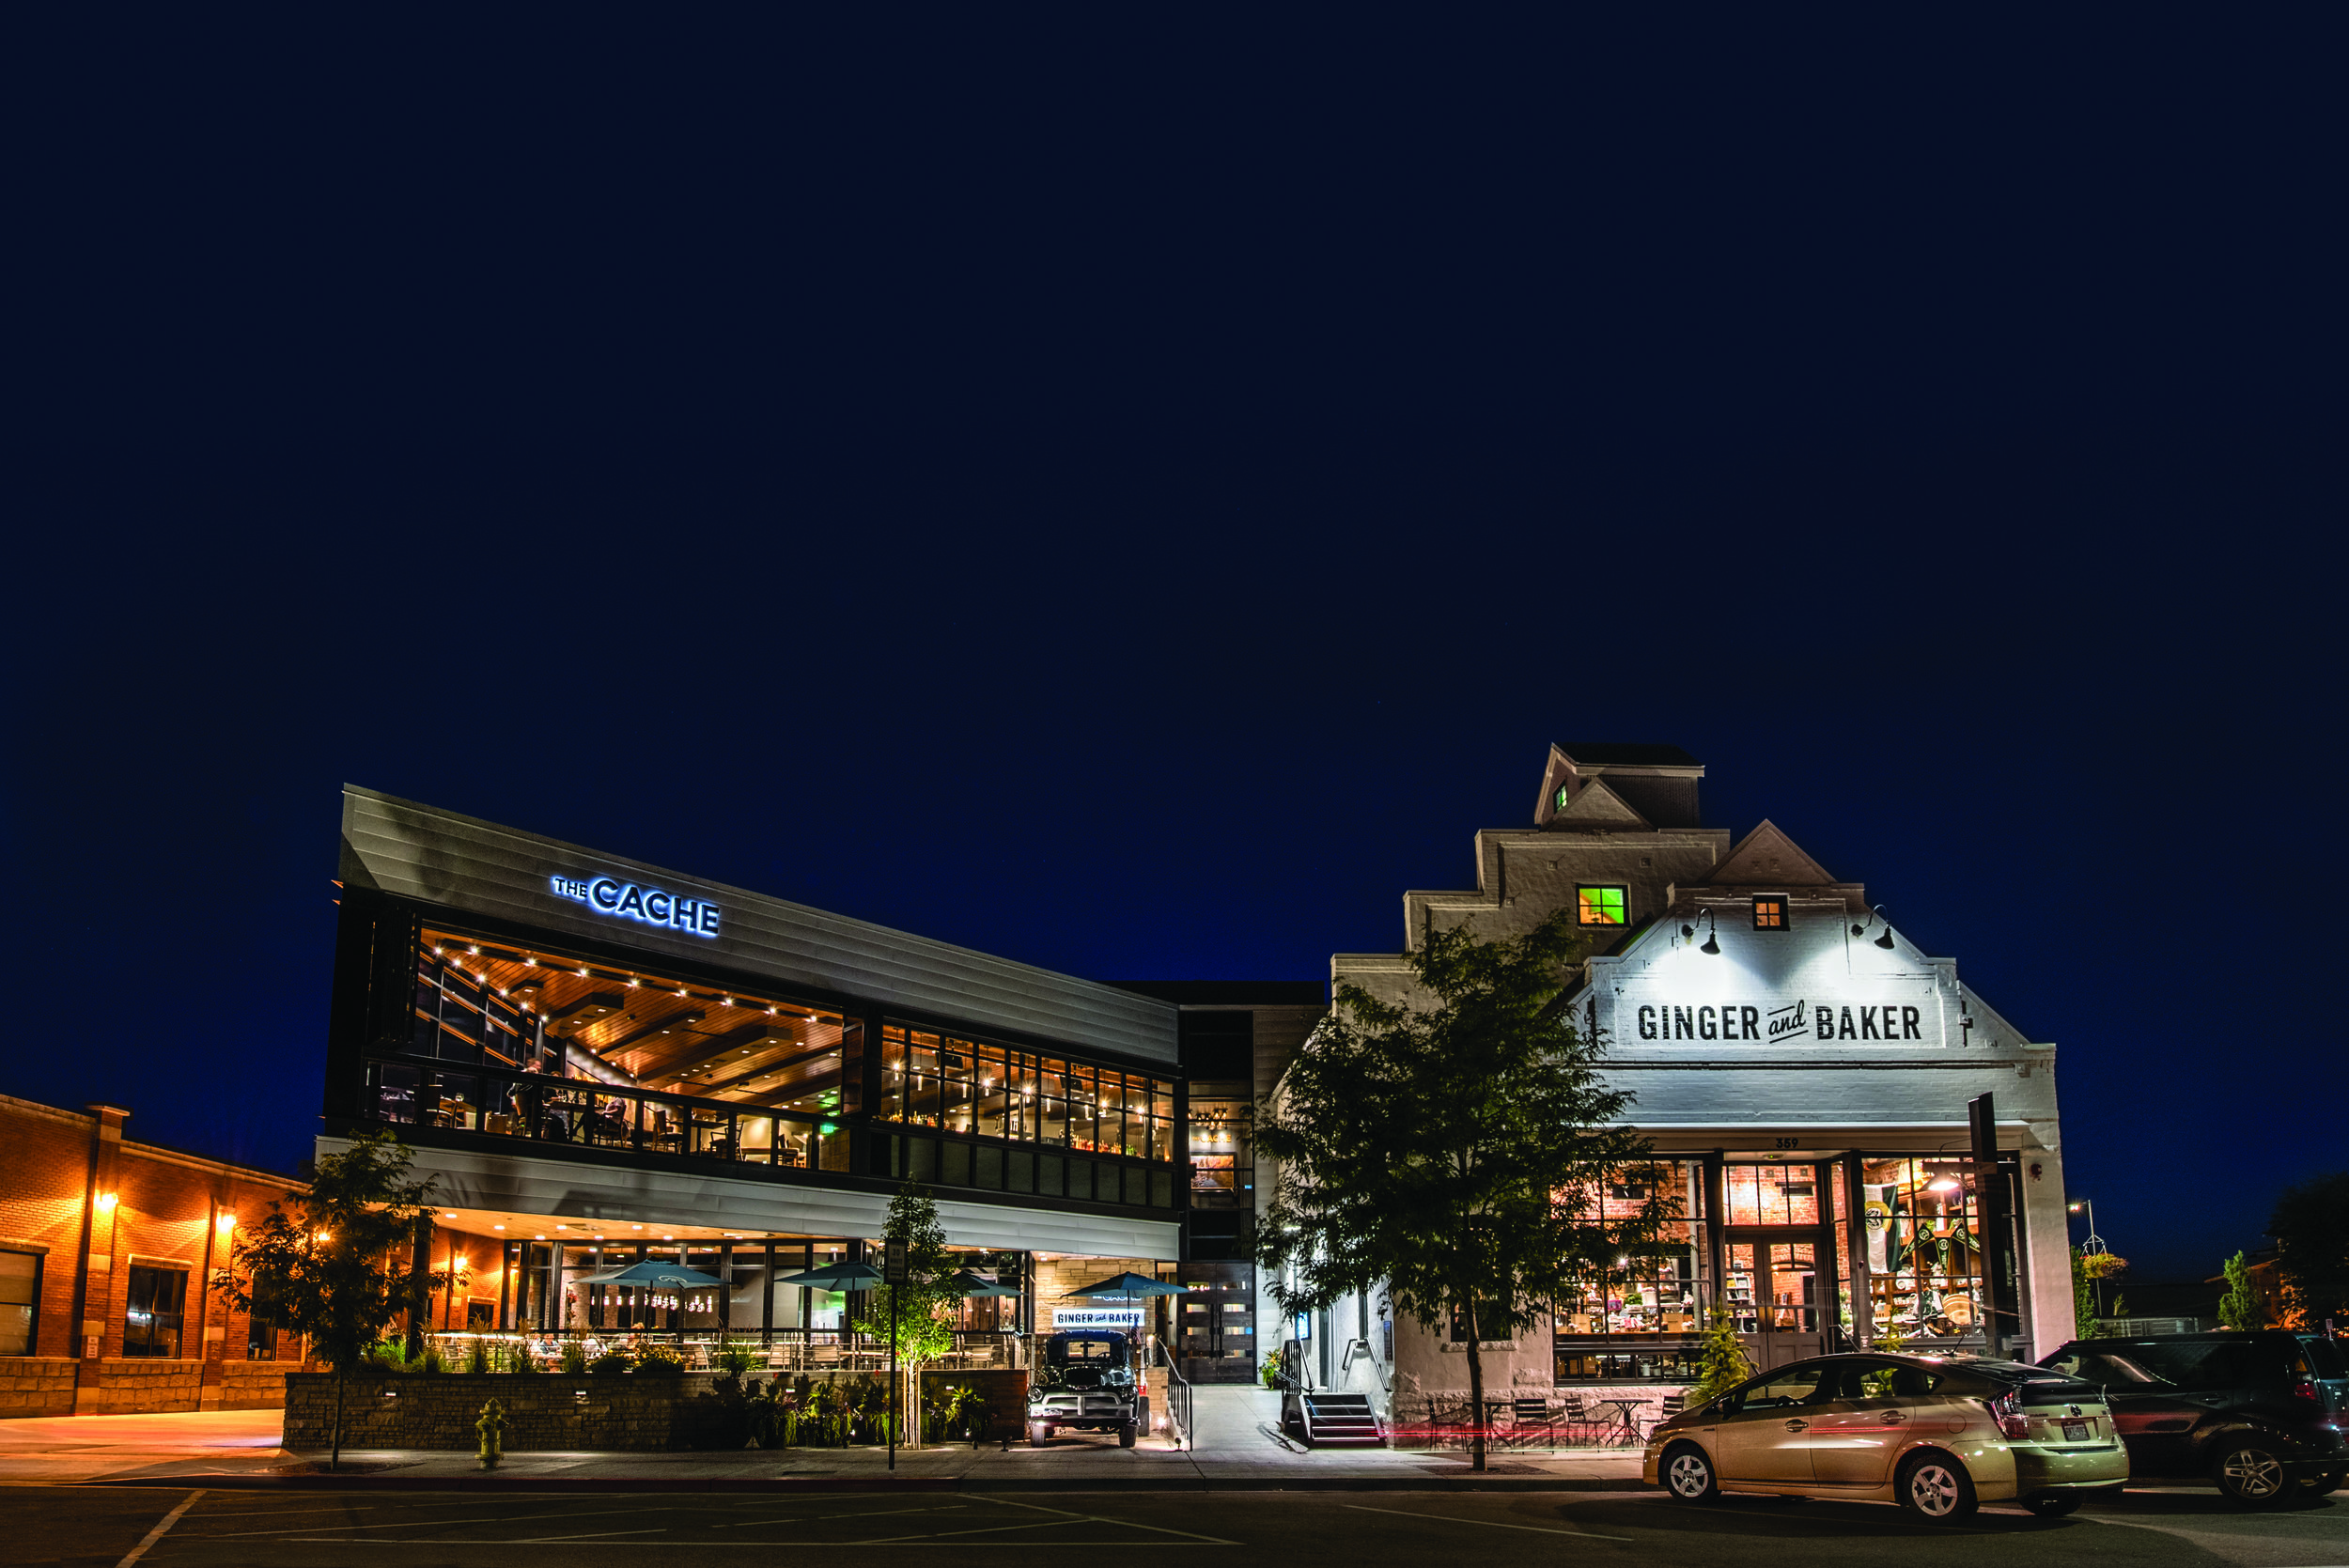 The Ginger and Baker eatery. Photos: Courtesy of Ginger and Baker and PhoCo Photography